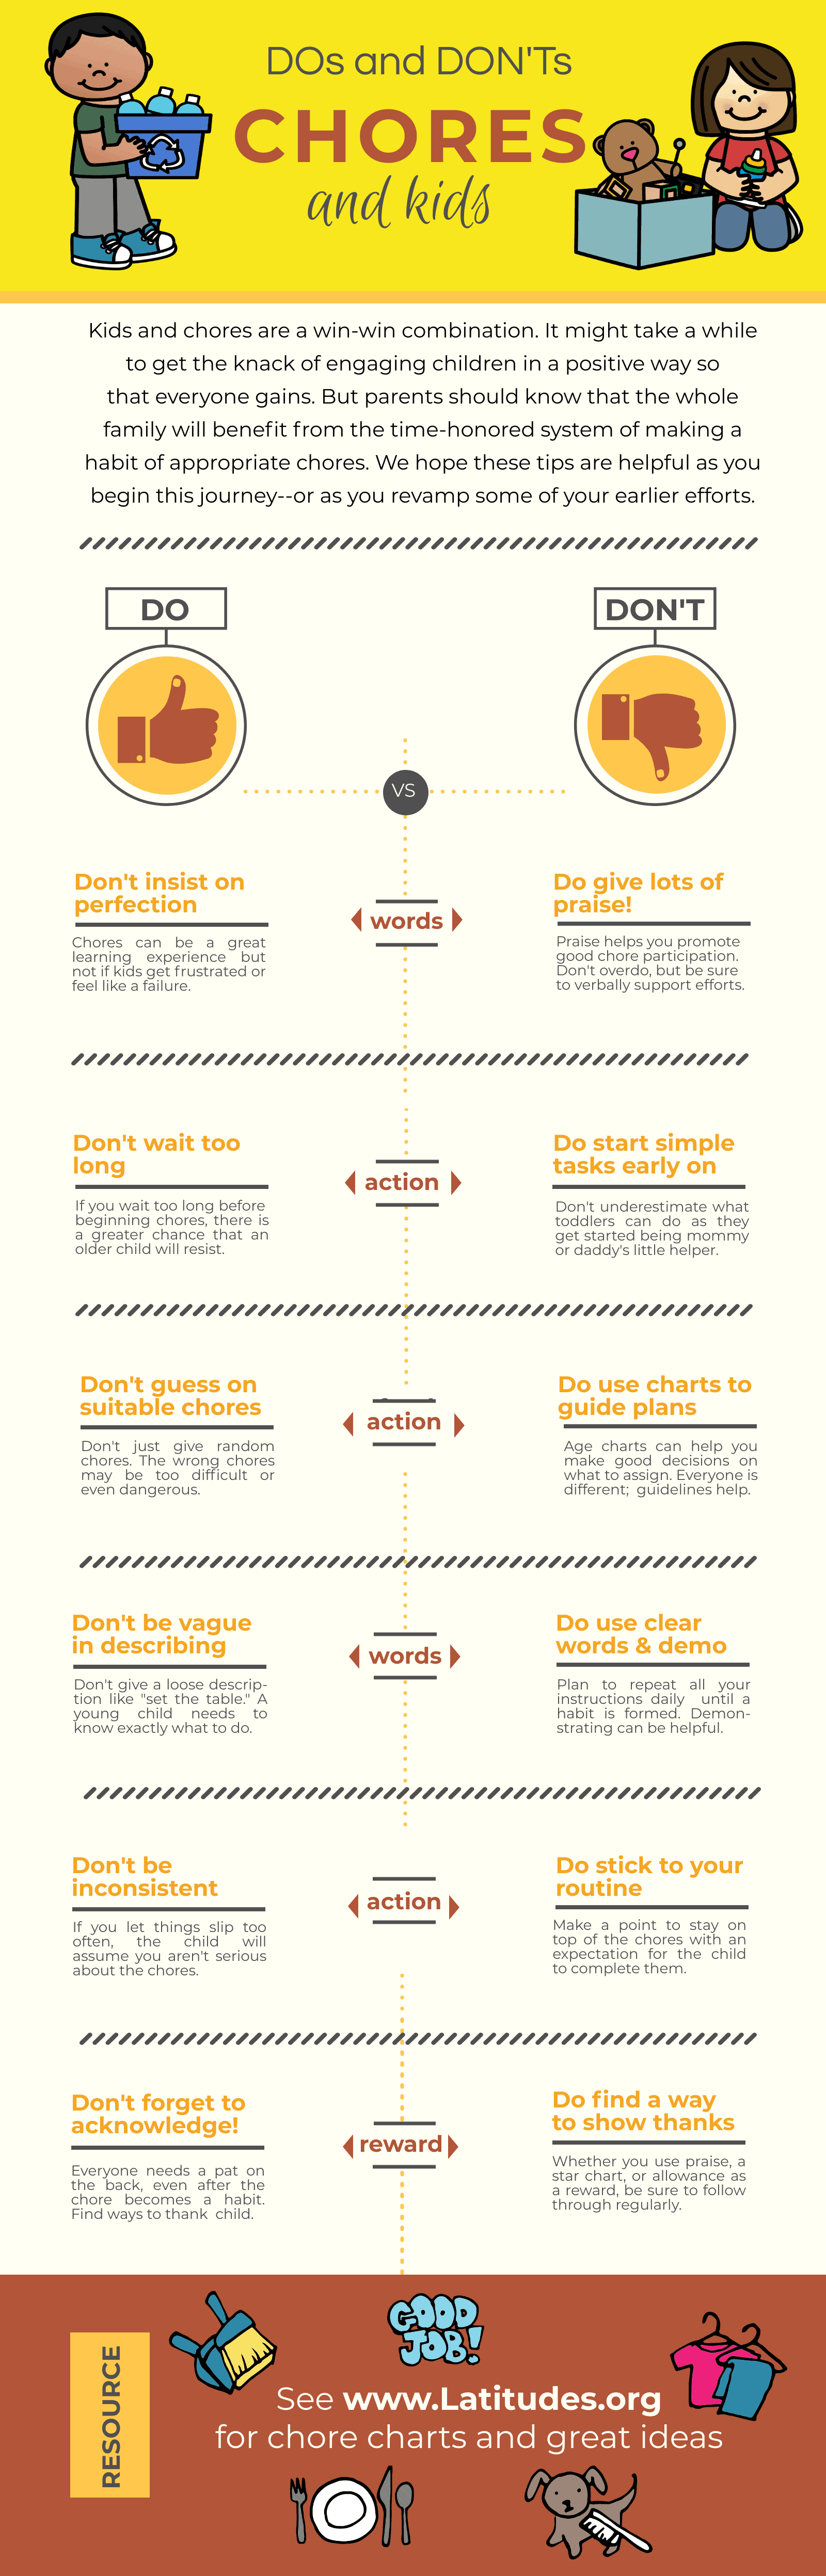 Dos and Donts Chores Kids Infographic